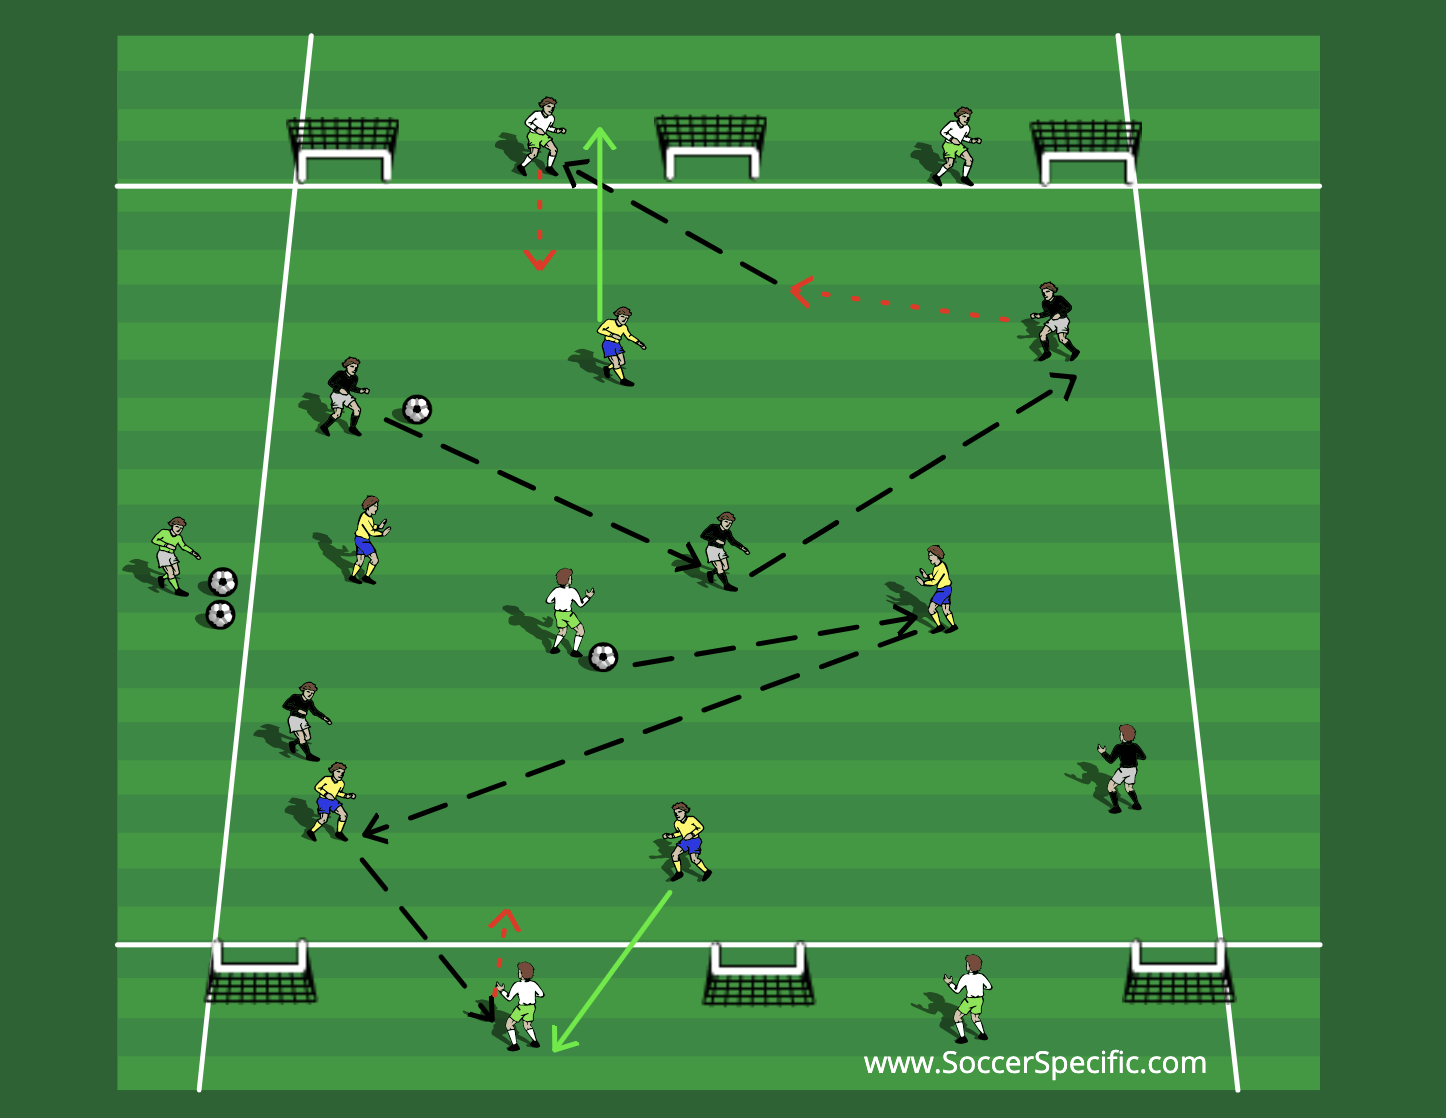 Small Sided Game Roulette | SoccerSpecific.com